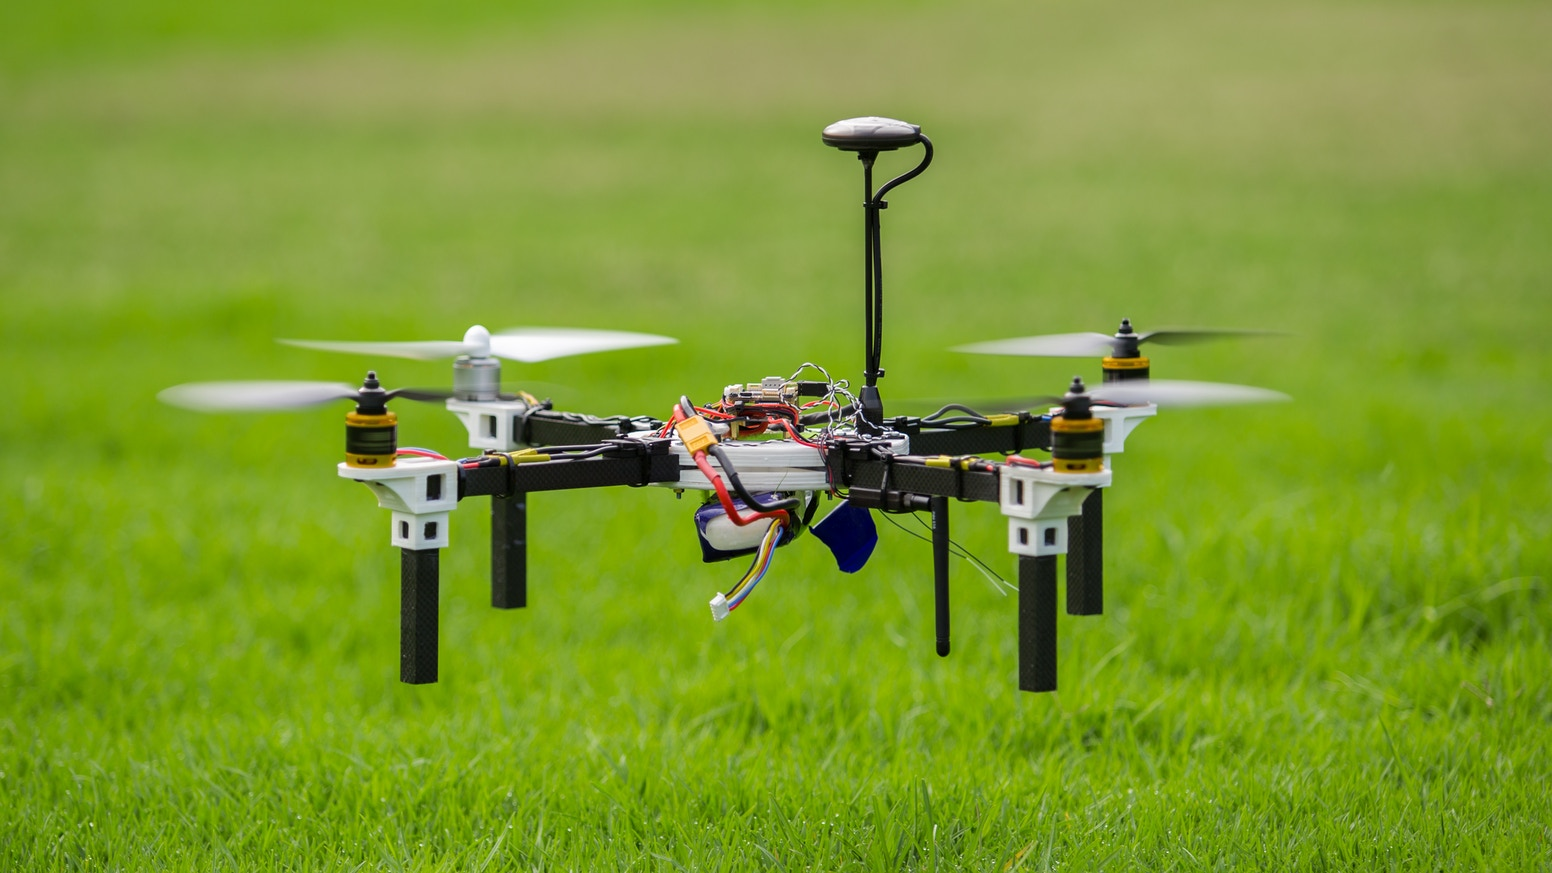 H4wk diy drone kit build fly your own quadcopter by diyode build your own fully programmable and upgradable h4wk drone as published in diyode magazine solutioingenieria Images